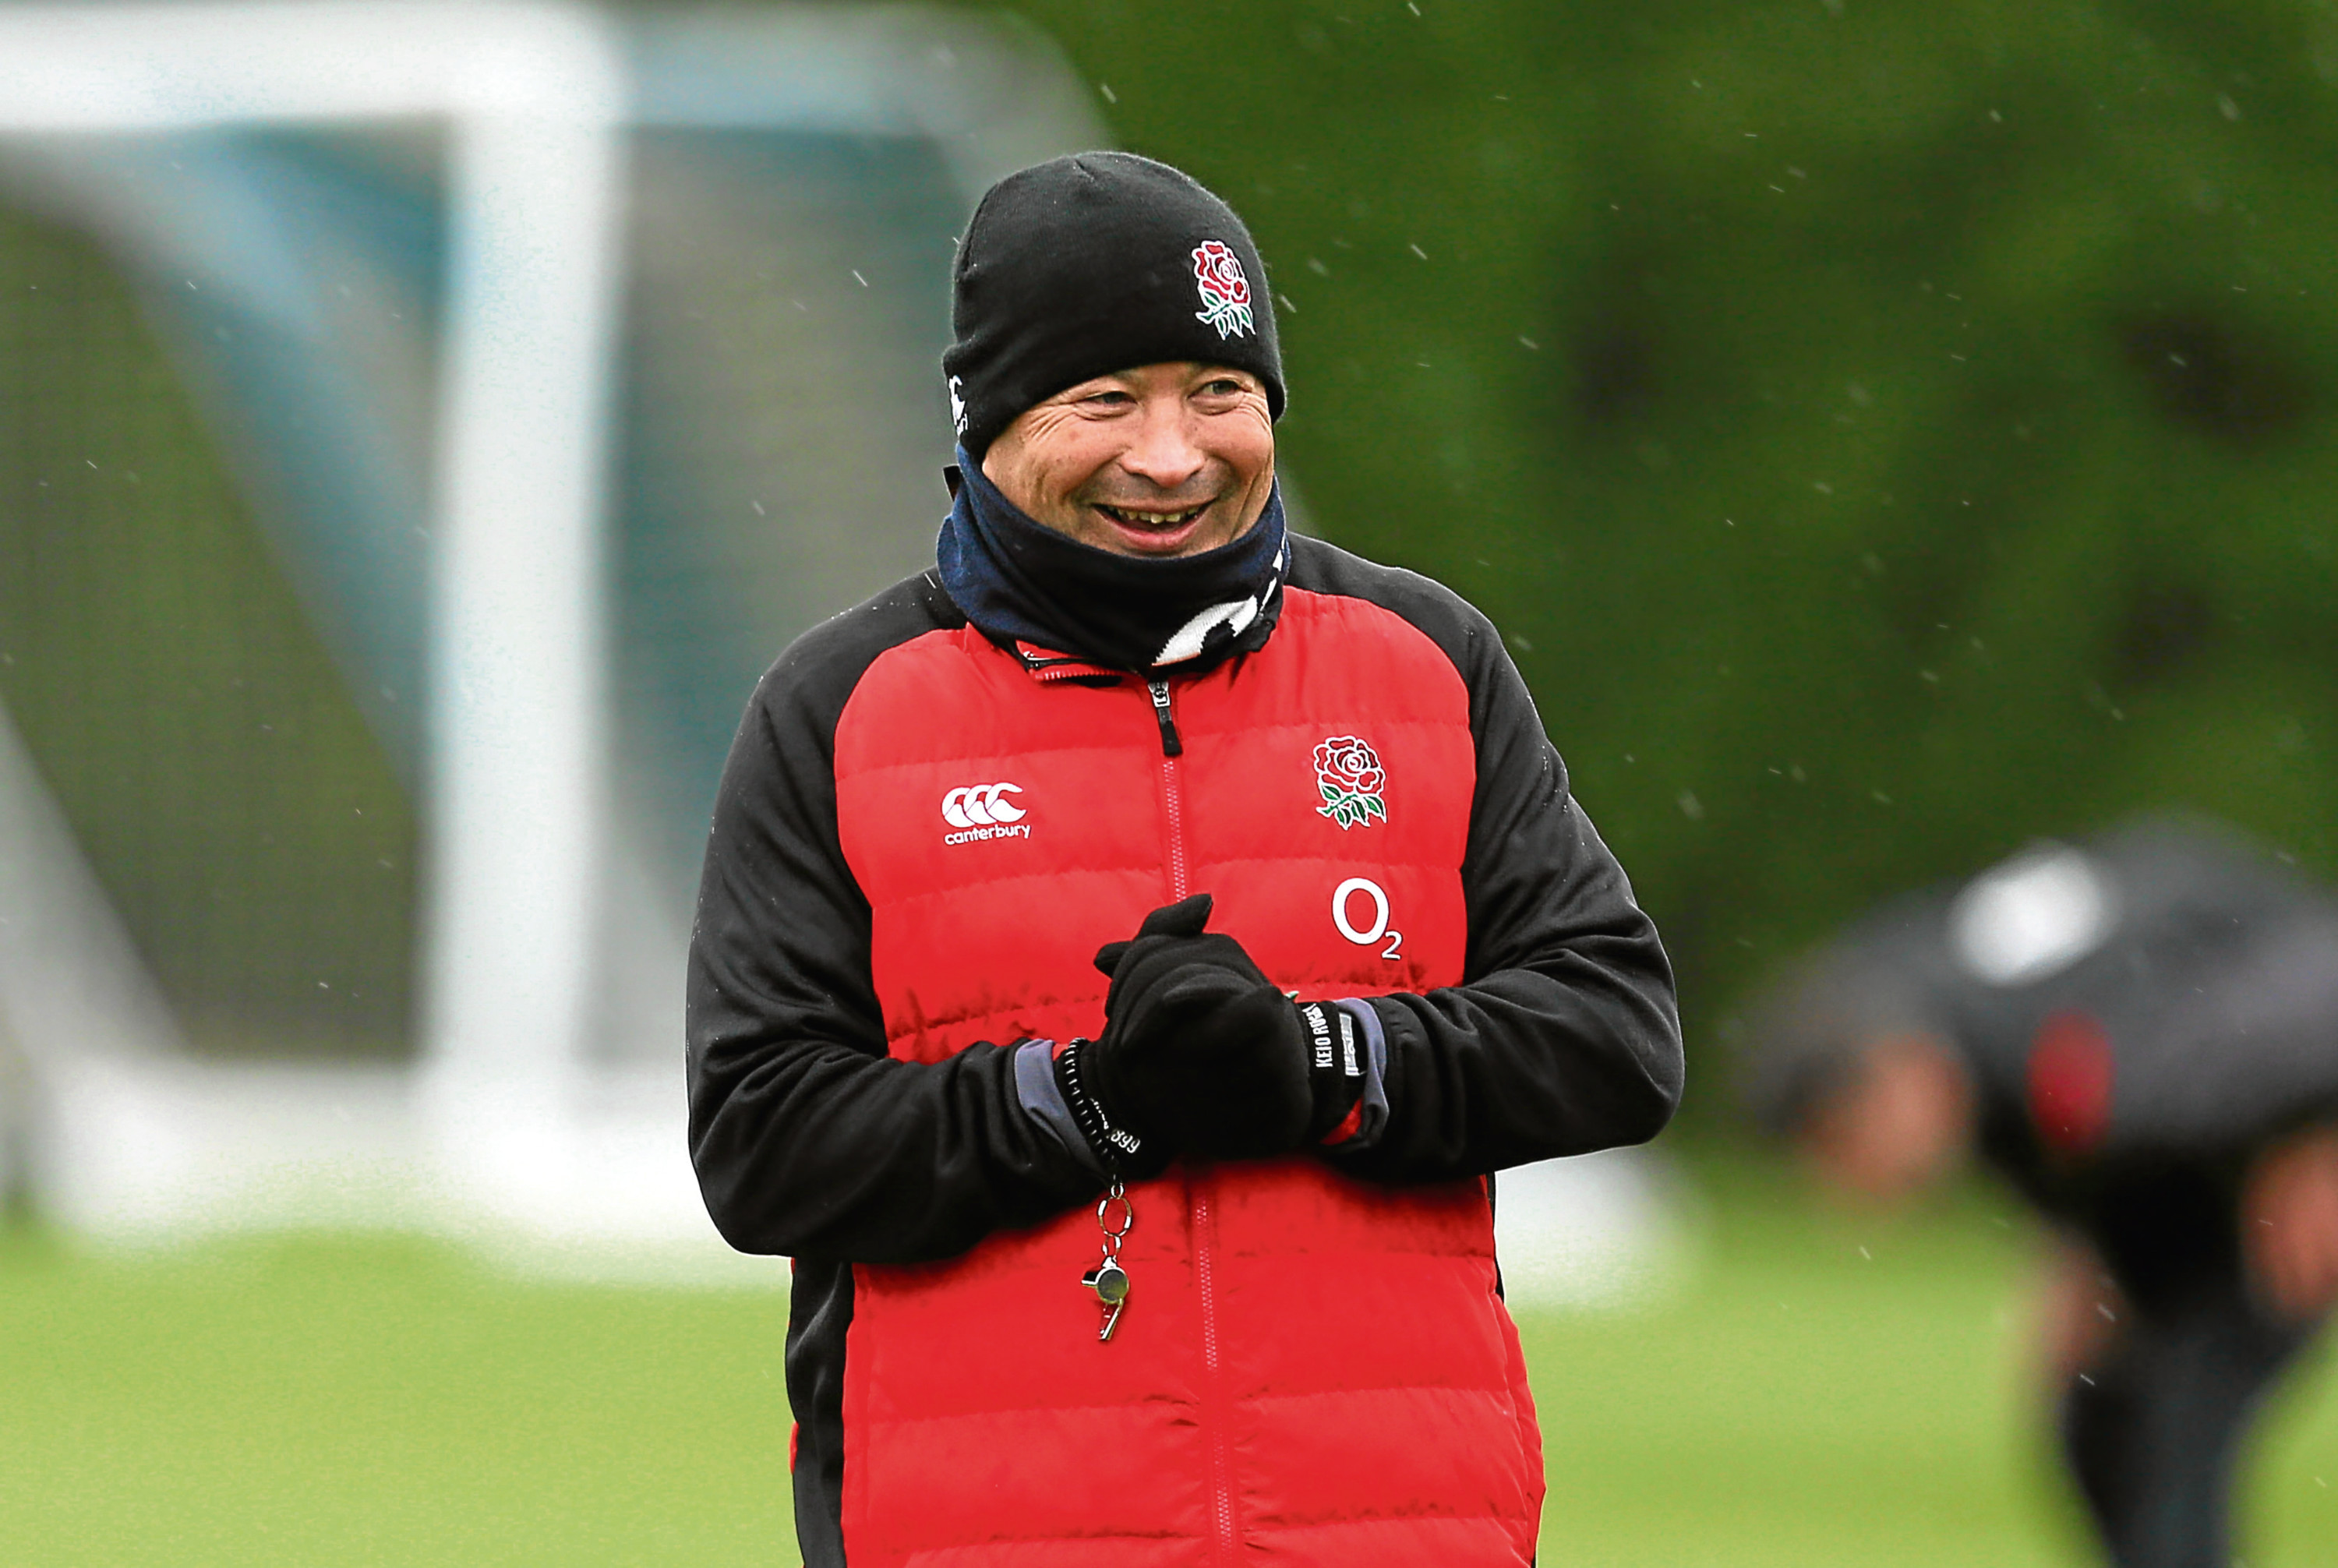 England coach Eddie Jones during the training session at Latymer Upper School, London. PRESS ASSOCIATION Photo. Picture date: Wednesday February 14, 2018. See PA story RUGBYU England. Photo credit should read: Steven Paston/PA Wire. RESTRICTIONS: Editorial use only, No commercial use without prior permission.